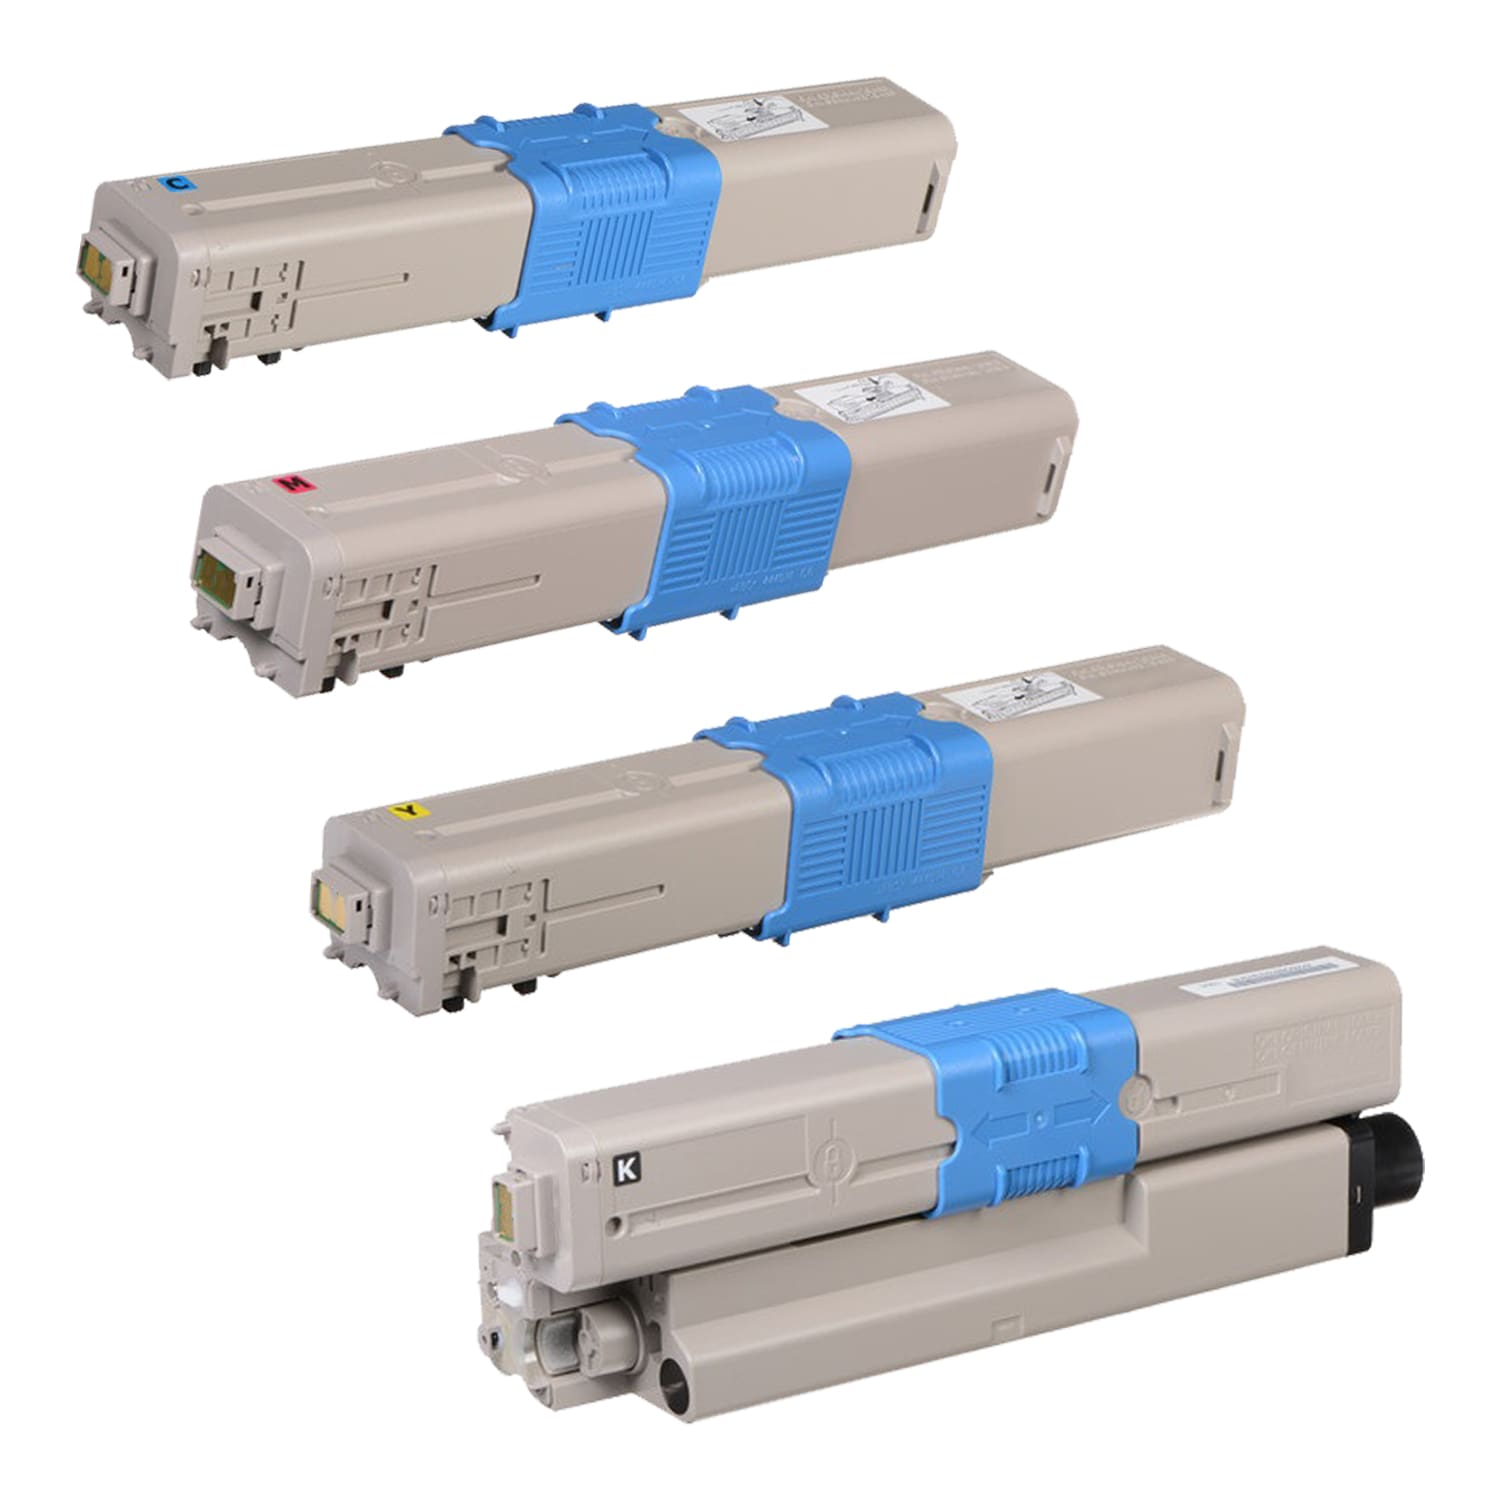 Remanufactured Okidata MC361 Toner Pack - 4 Cartridges